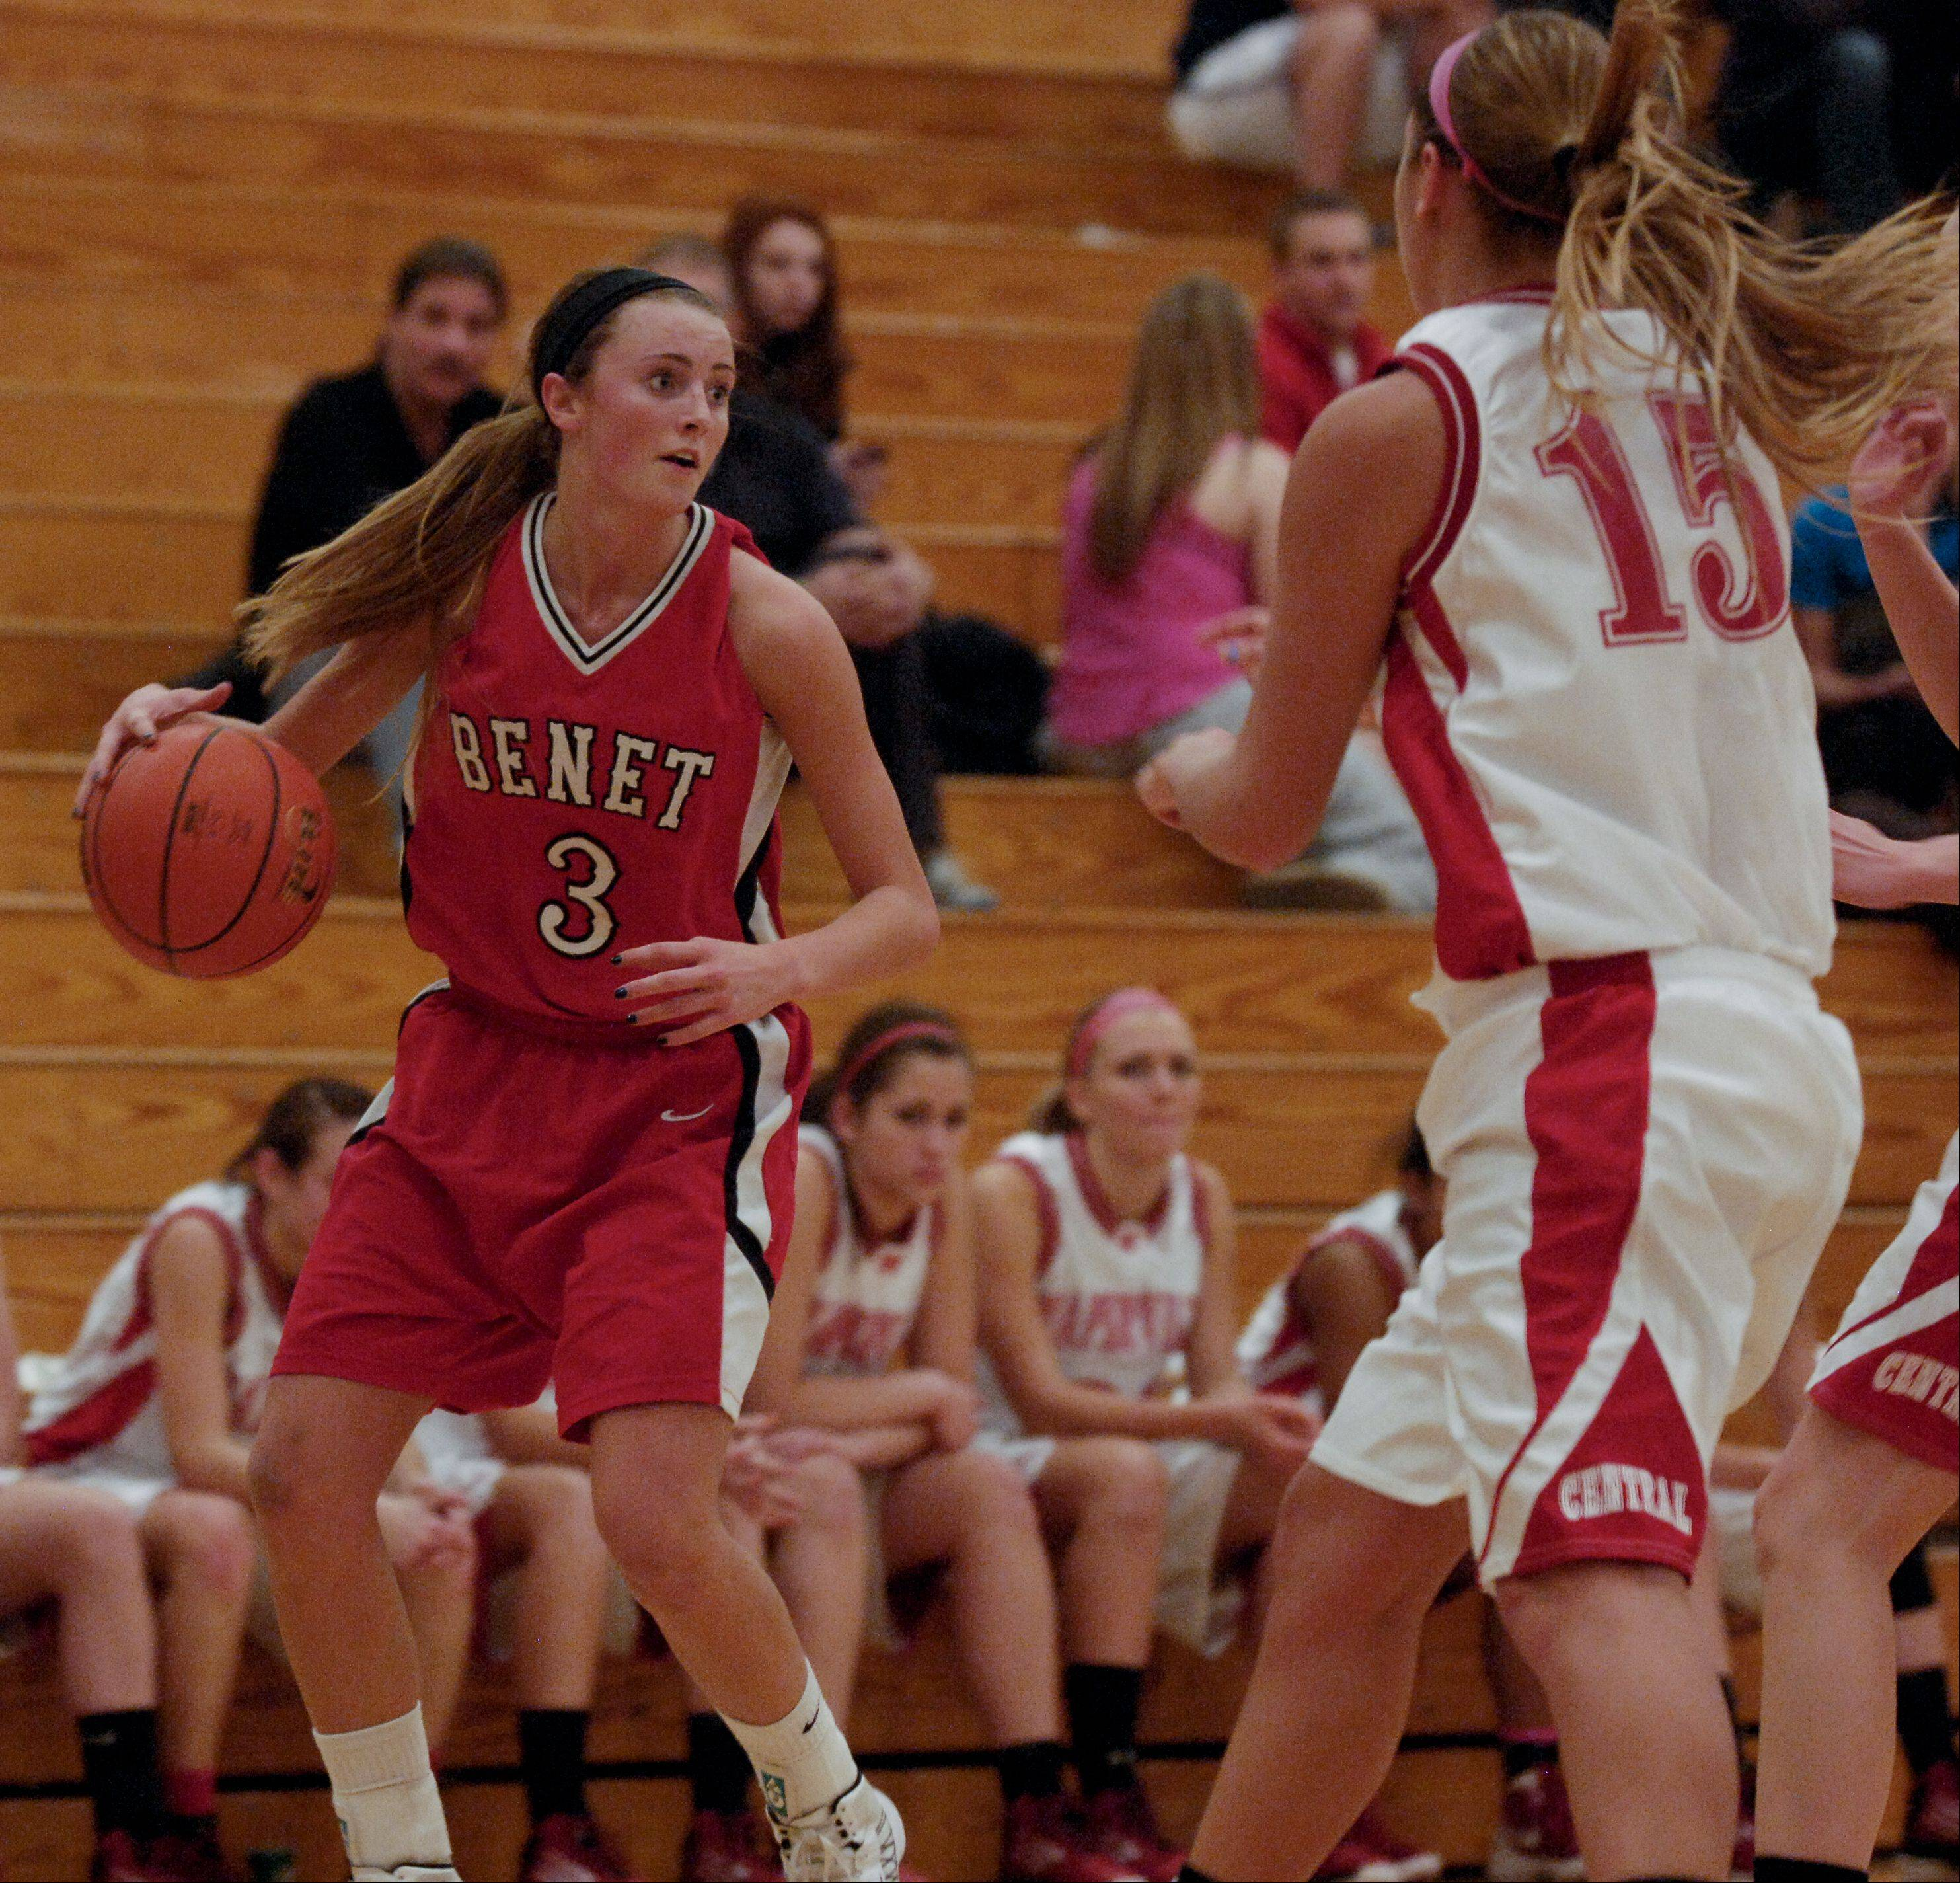 Christen Prasse of Benet Academy looks for an opening during the girls Class 4A regional final basketball game against Naperville Central, Thursday in Lisle.